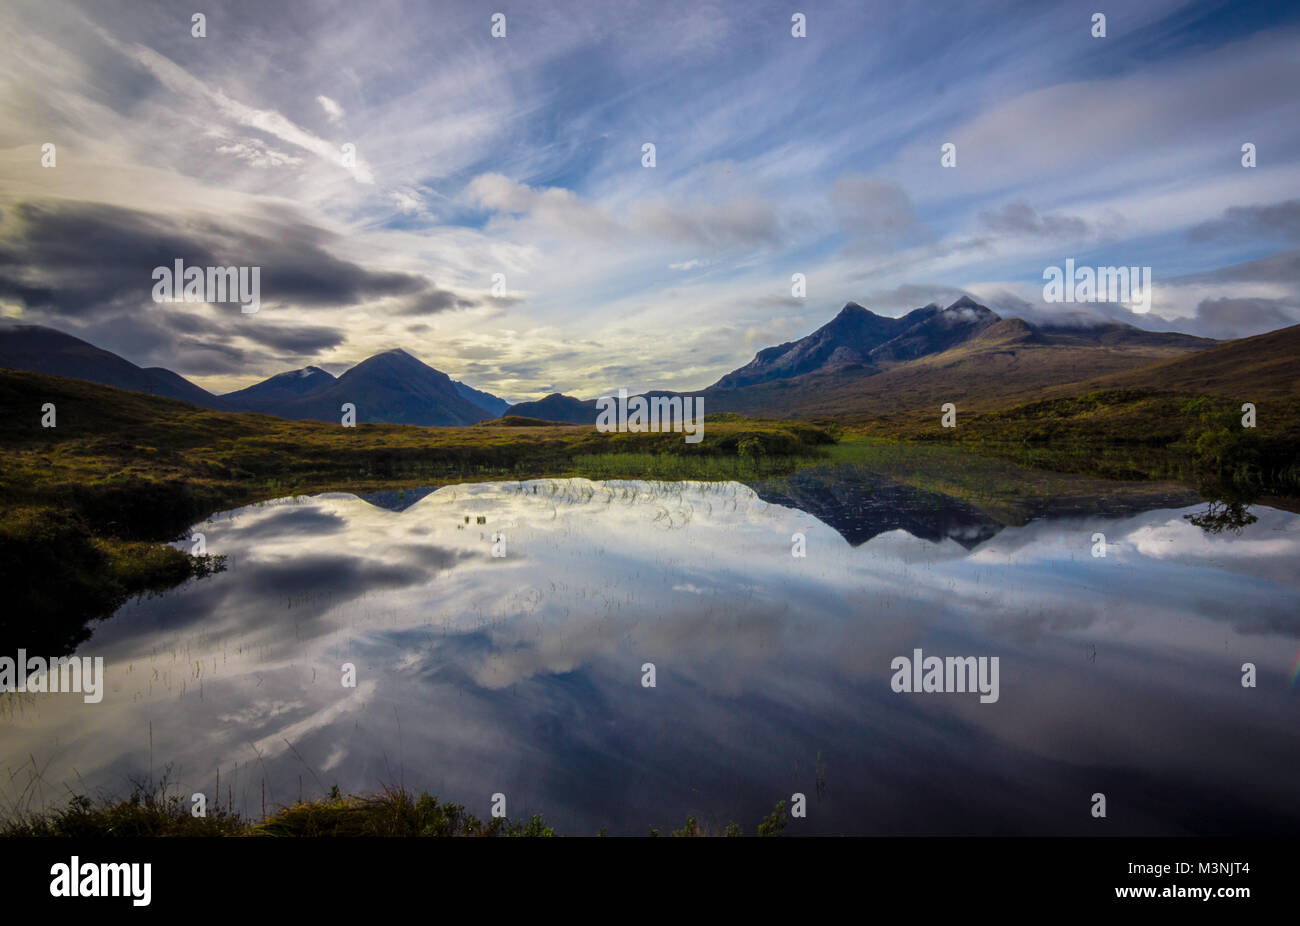 The Cuillin Mountains Reflected, Isle of Skye, Scotland - Stock Image